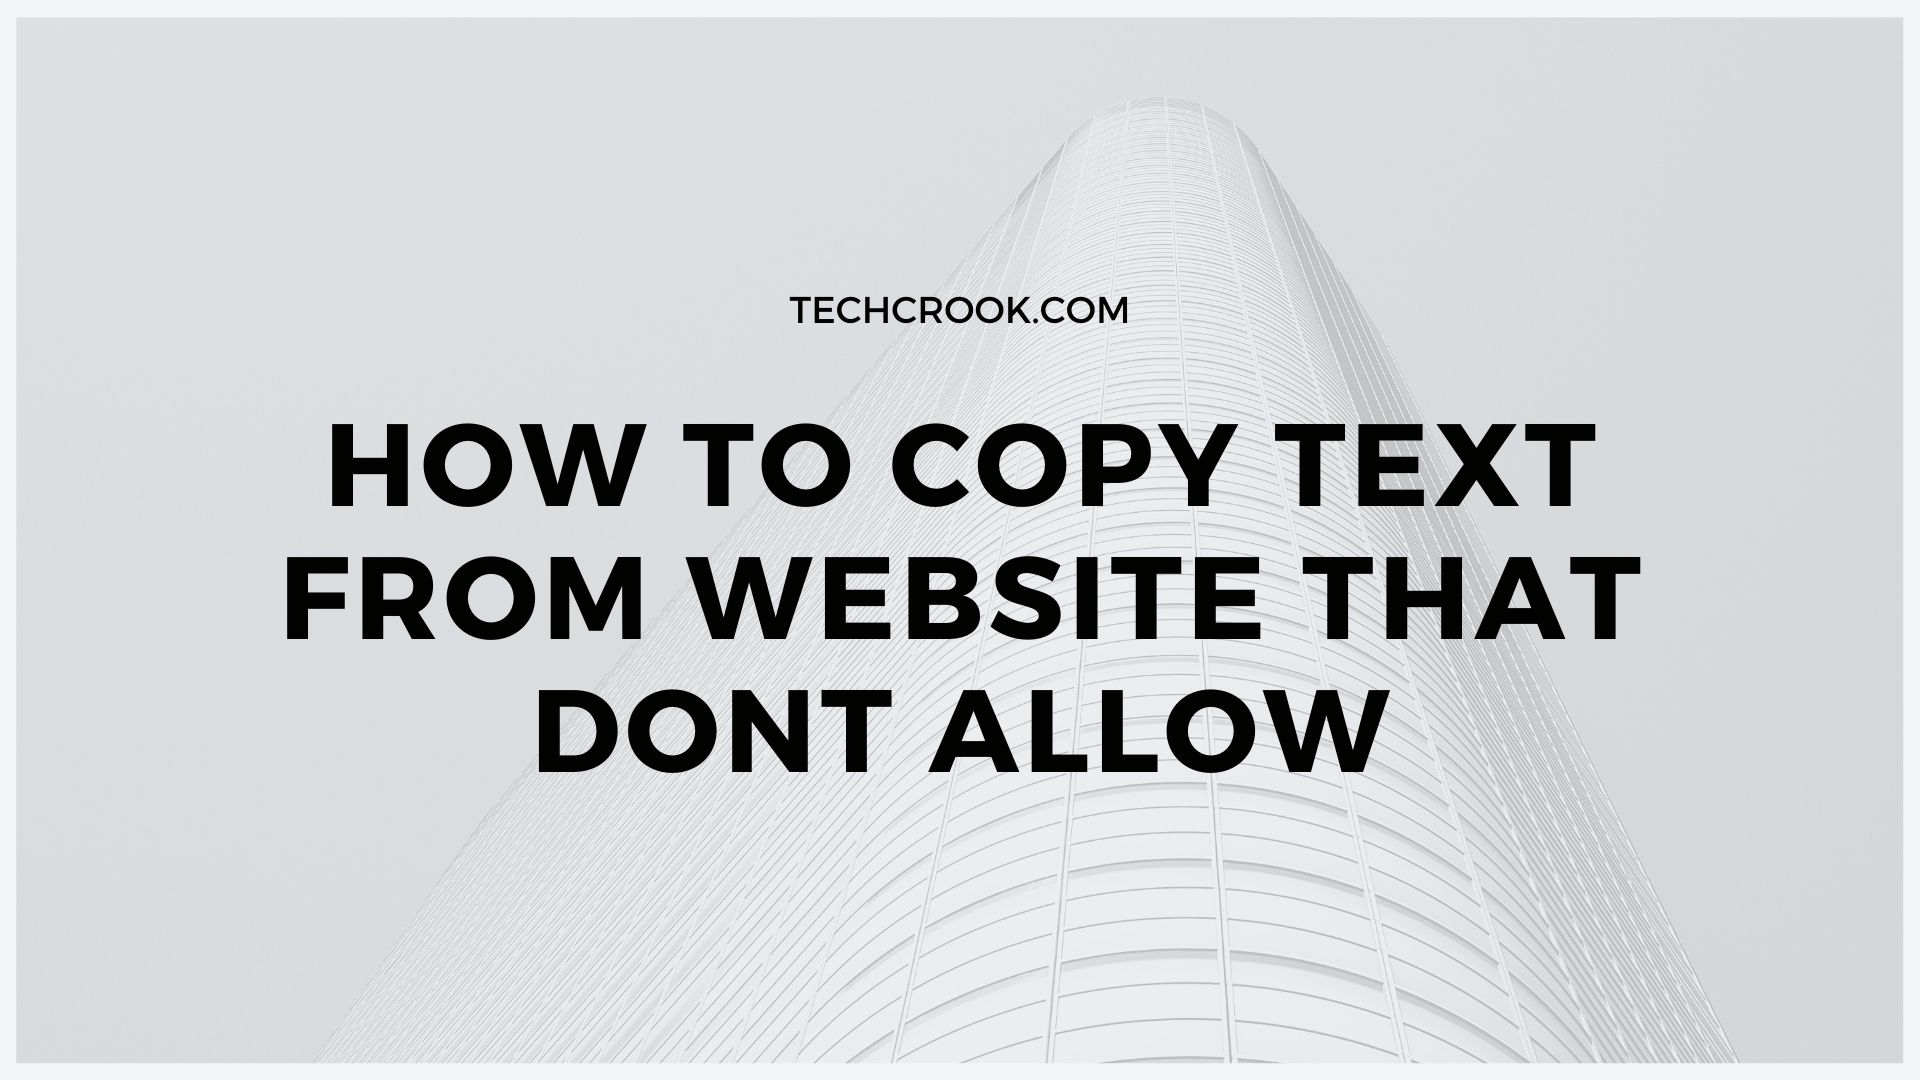 How to copy text from websites that don't allow